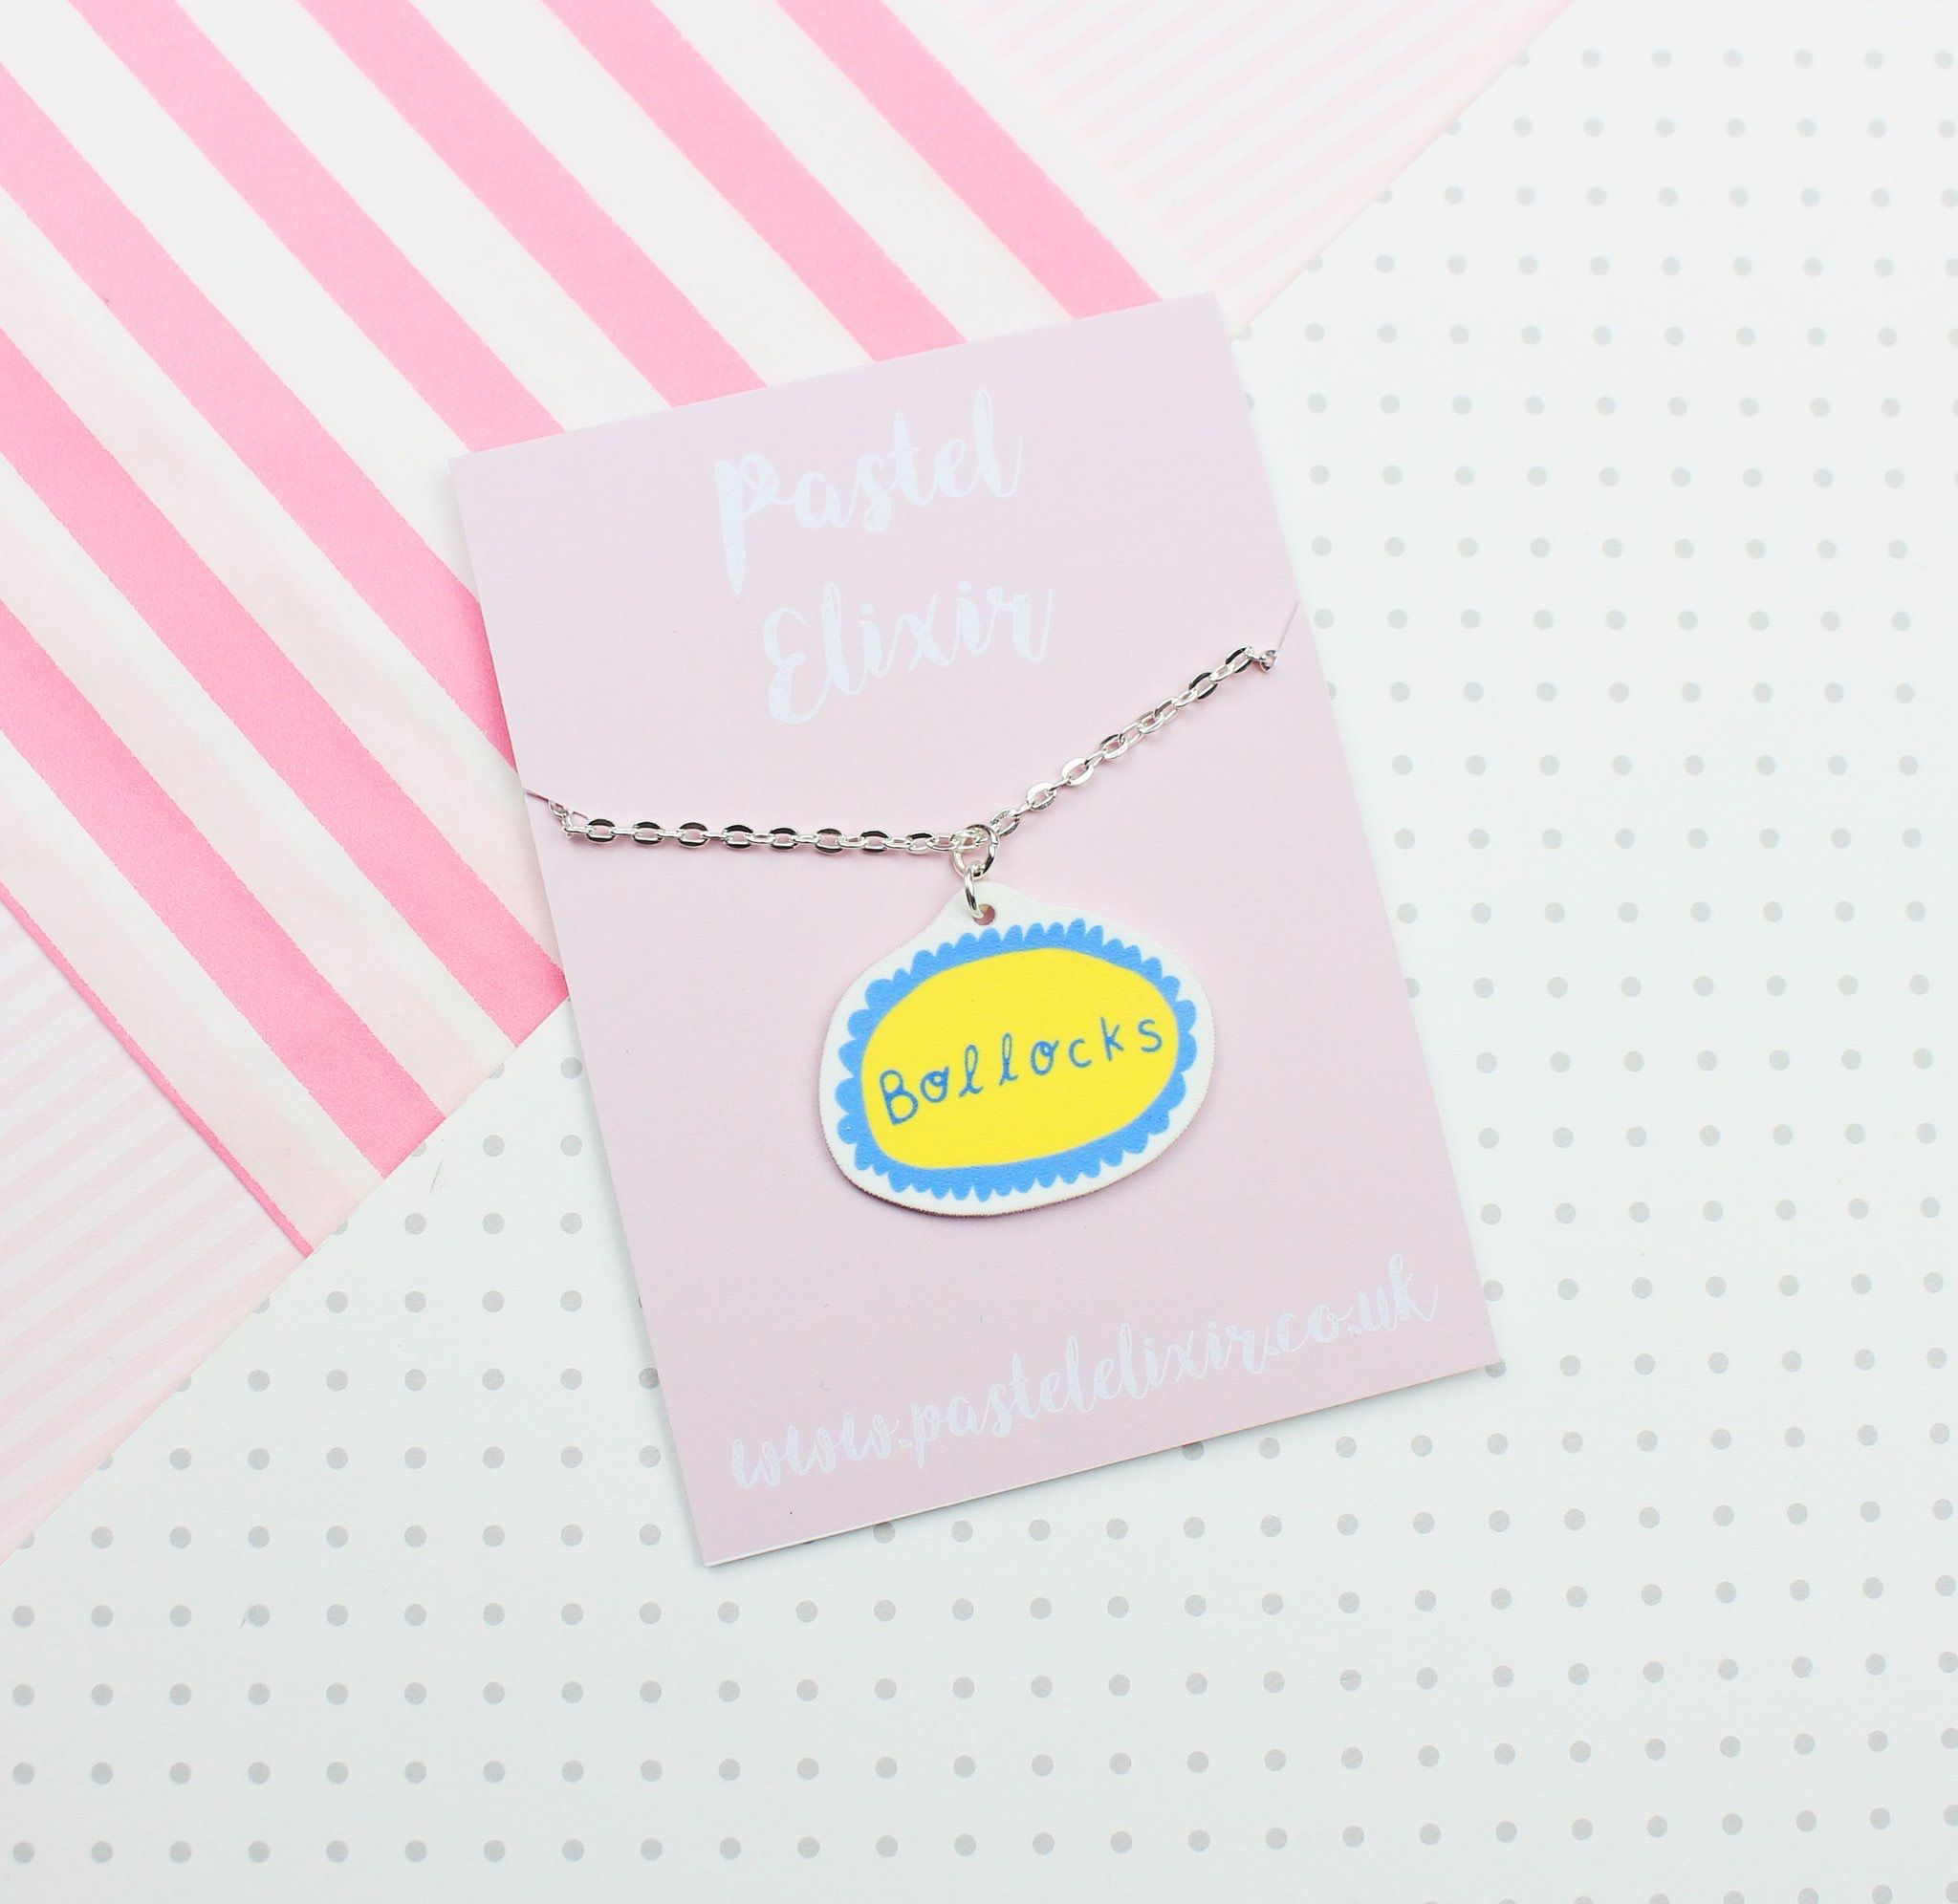 Cheeky British Slang Phrase Necklaces From Pastelelixir